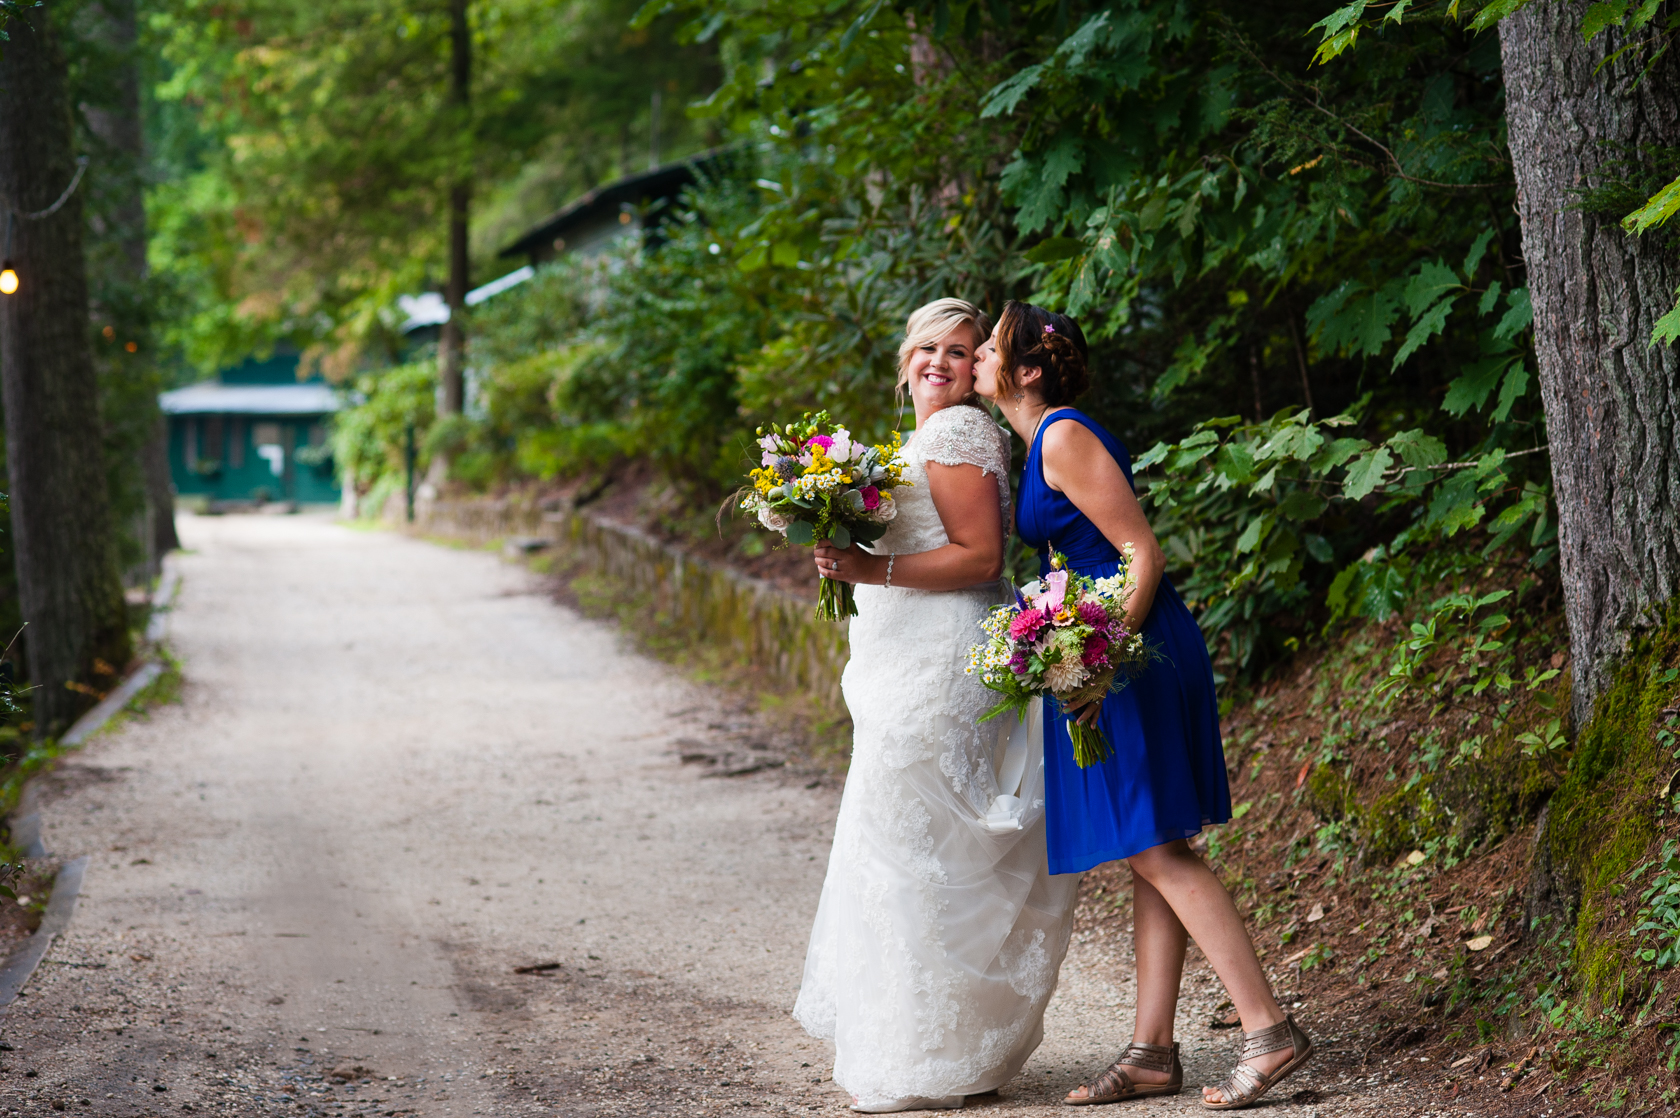 bridesmaid gives beautiful bride a kiss on the cheek on a winding forest lane